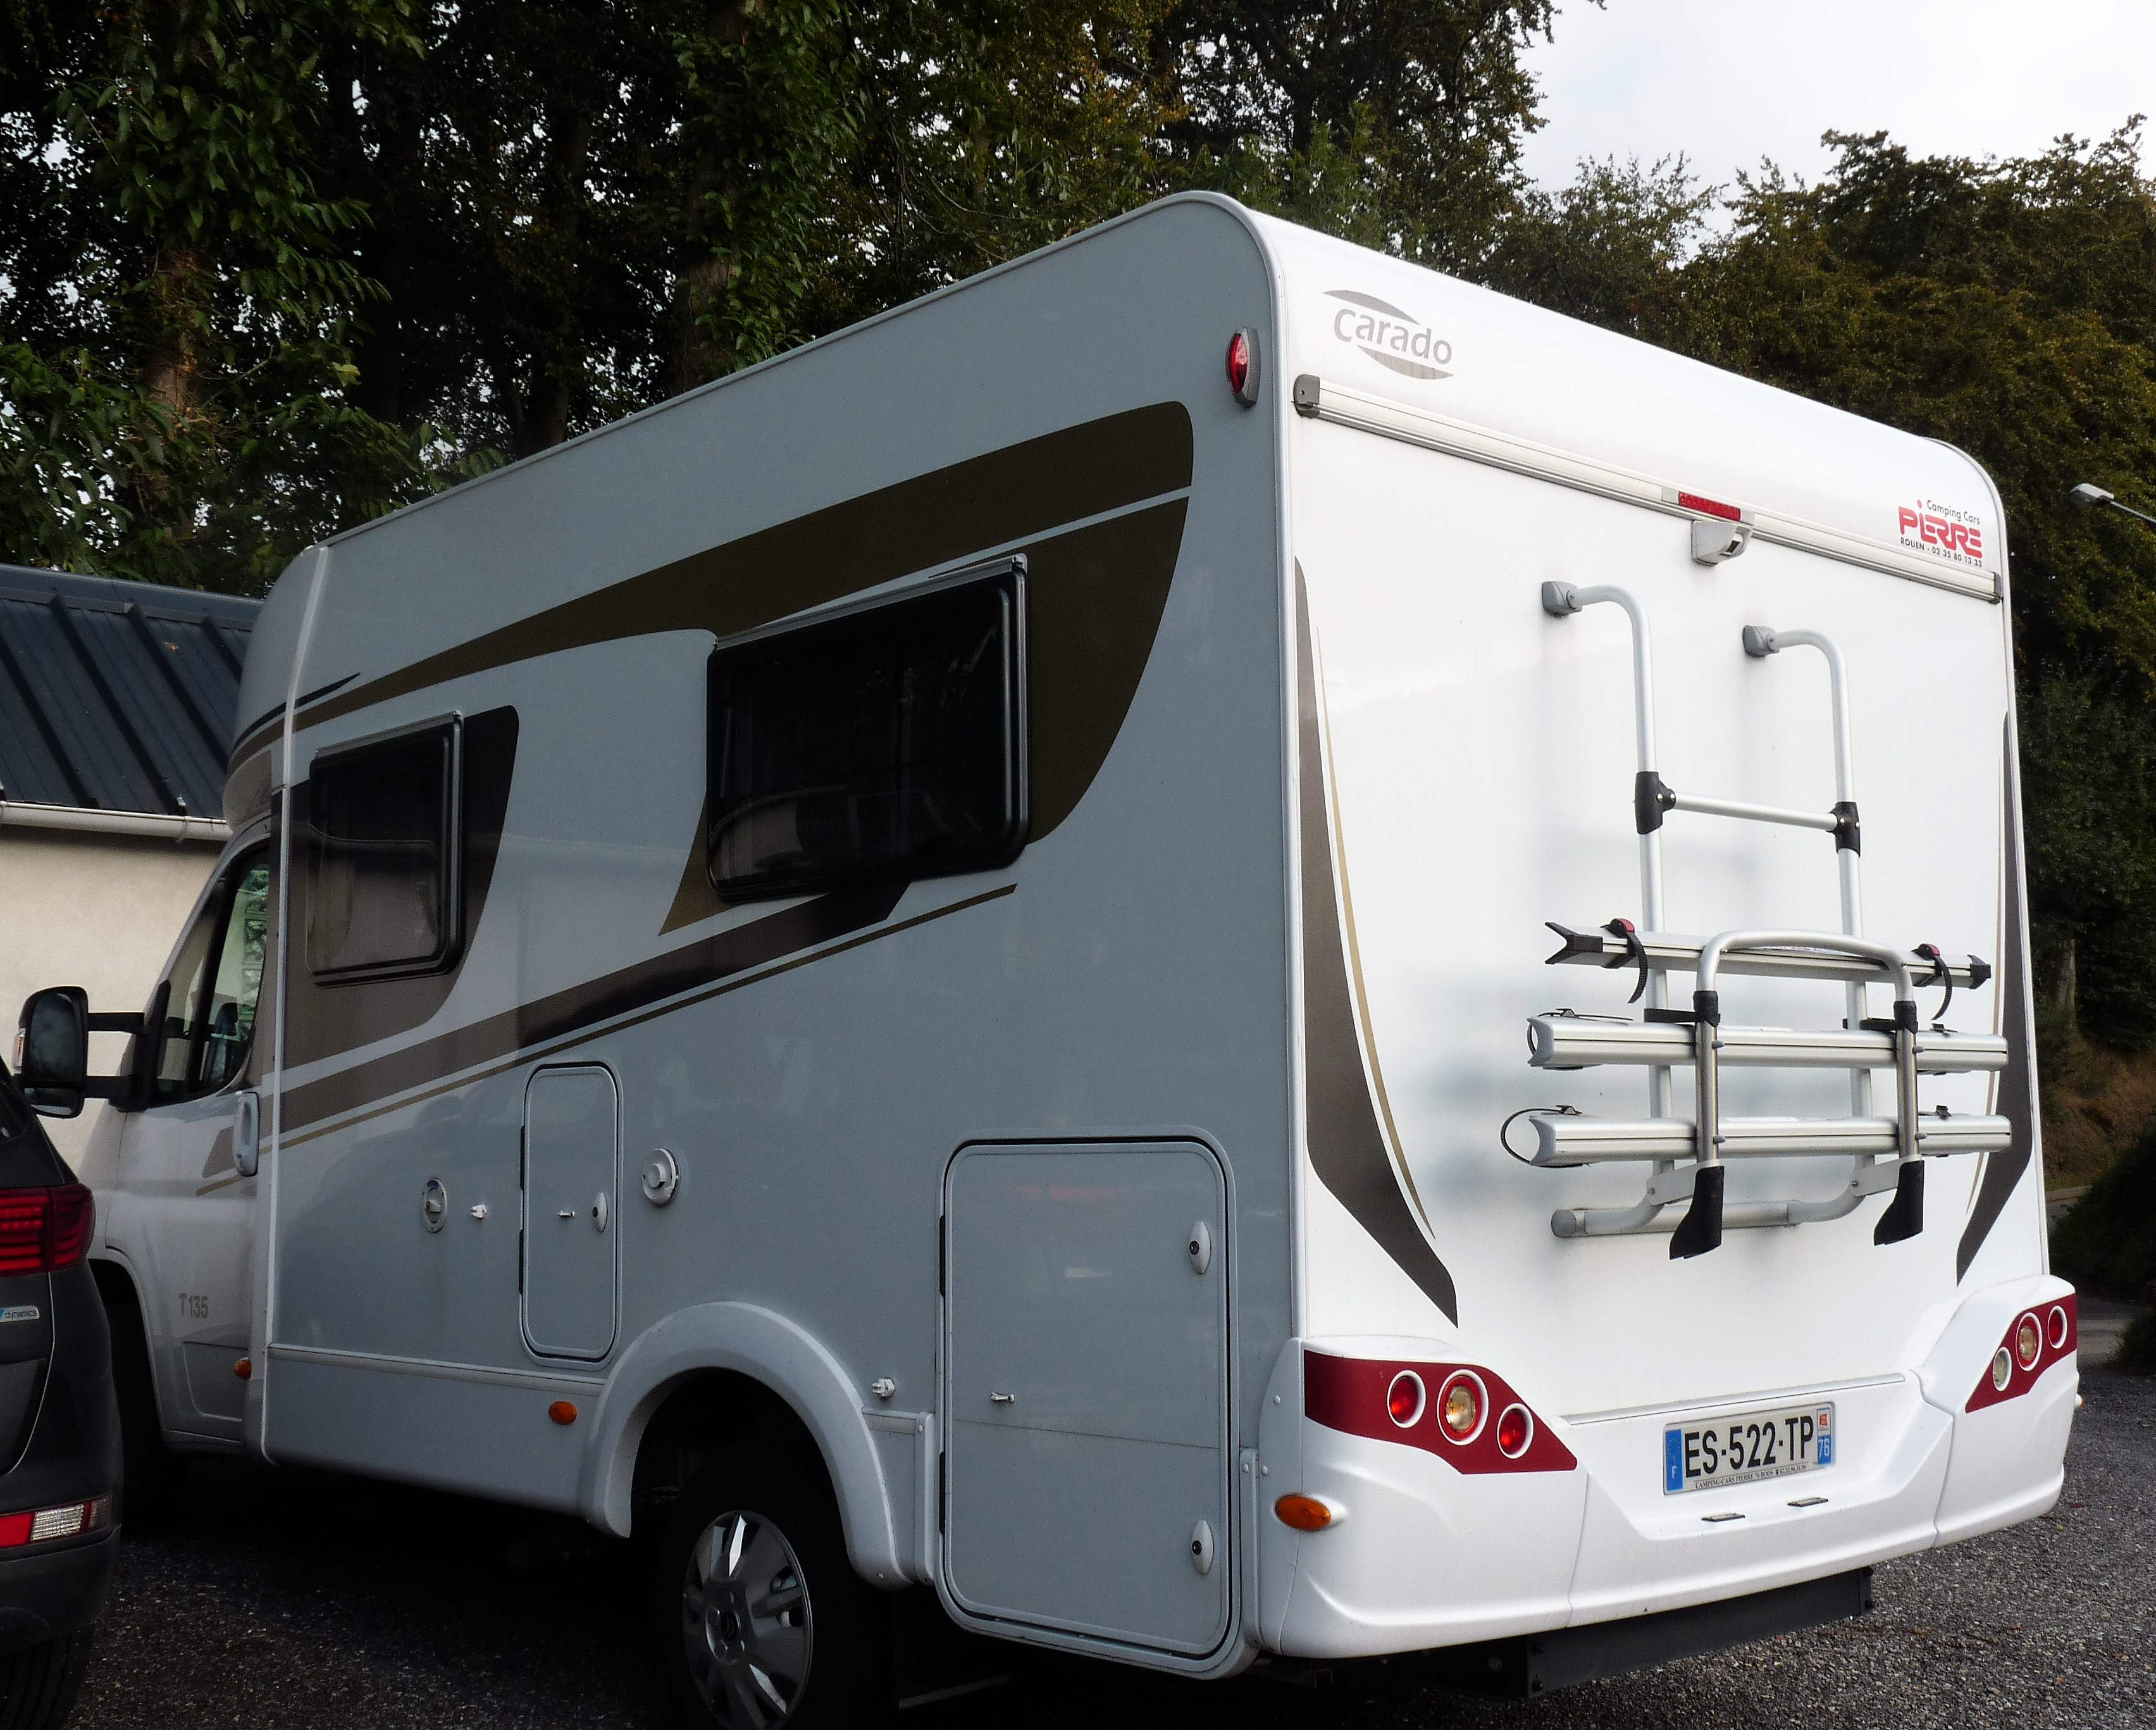 Camping car occasion particulier bretagne